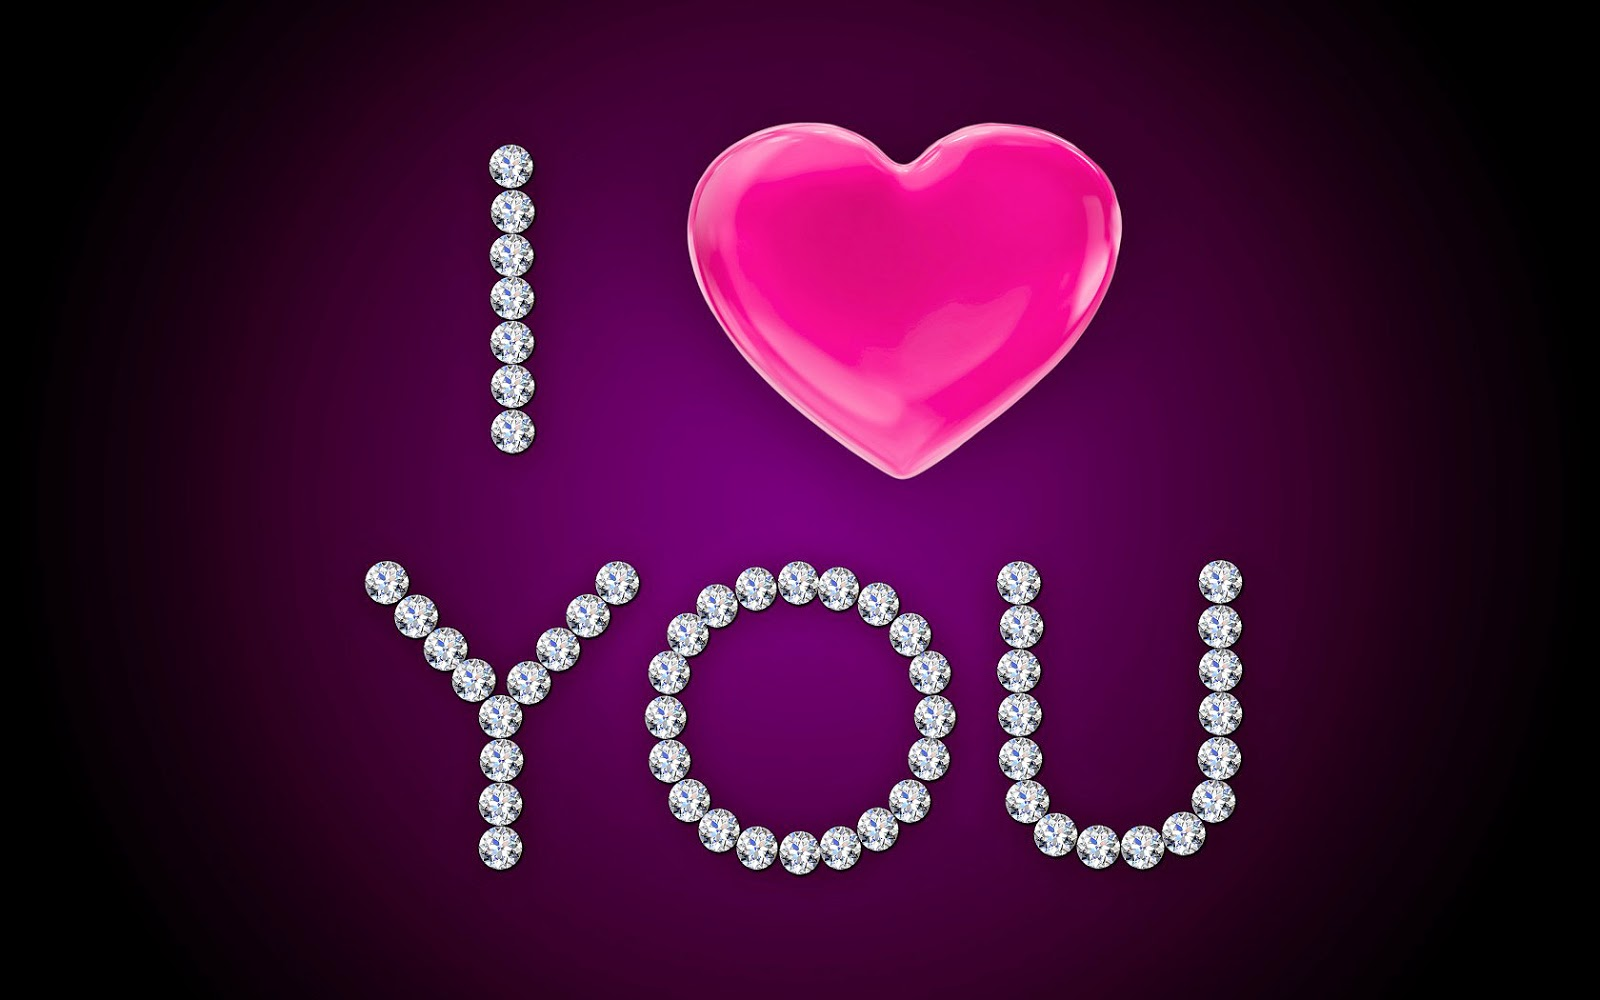 L Love You Hd Wallpaper : Moved Permanently